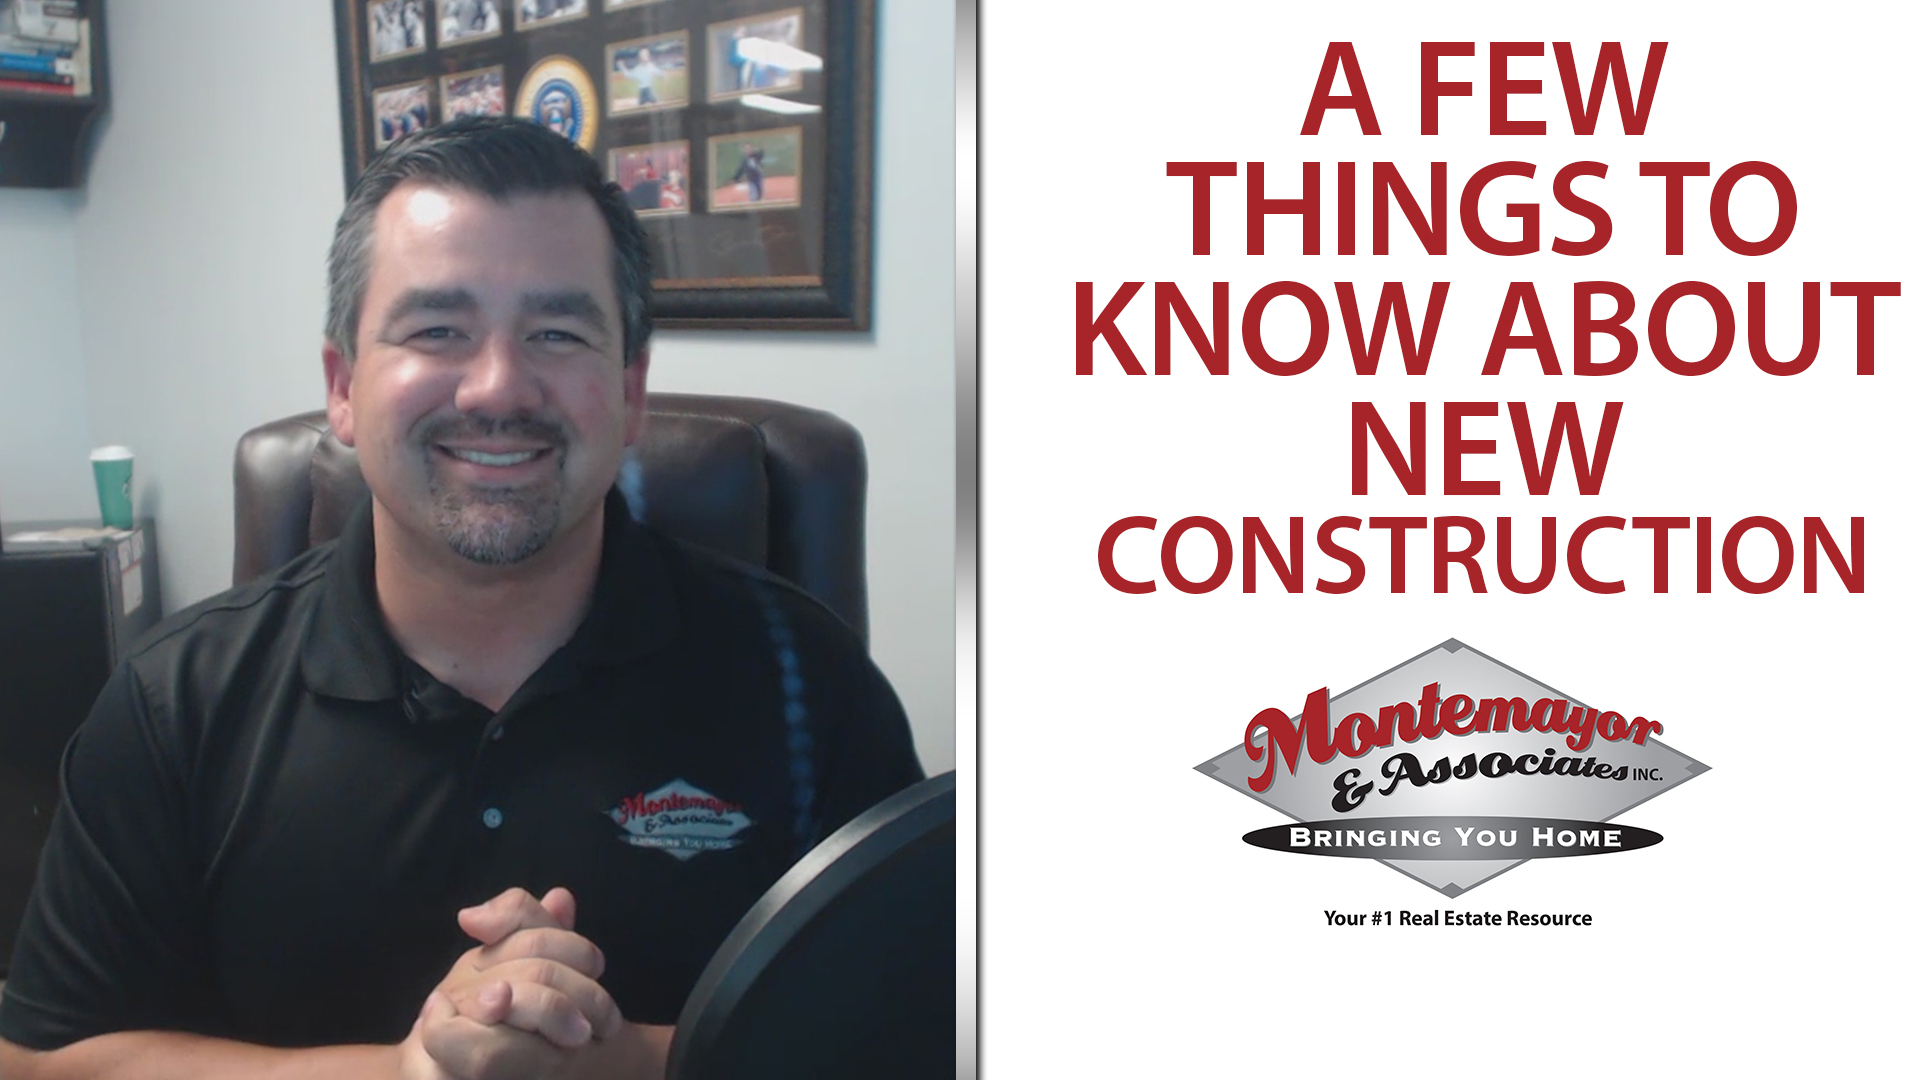 Important Tips for Homebuyers Interested in New Construction